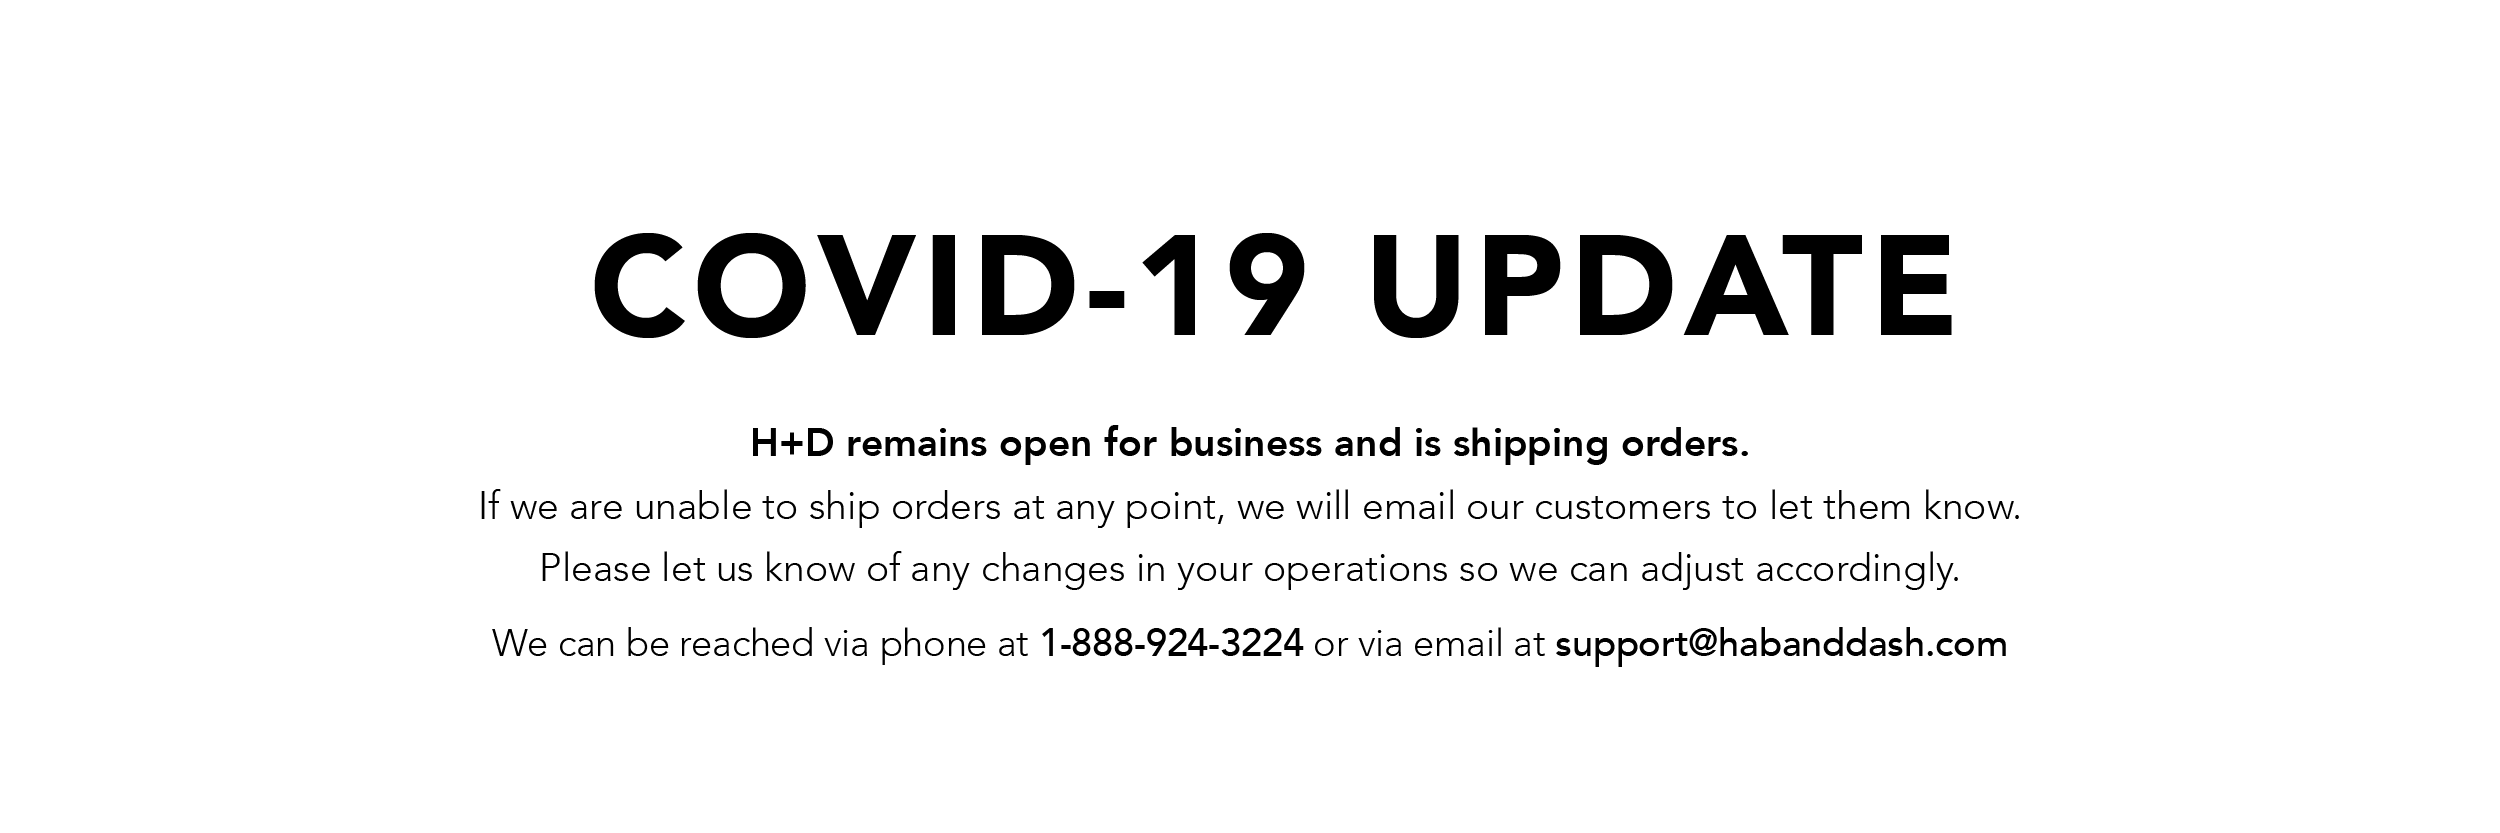 H+D remains open for business and is shipping orders. If we are unable to ship orders at any point, we will email our customers to let them know. Please let us know of any changes in your operations so we can adjust accordingly.